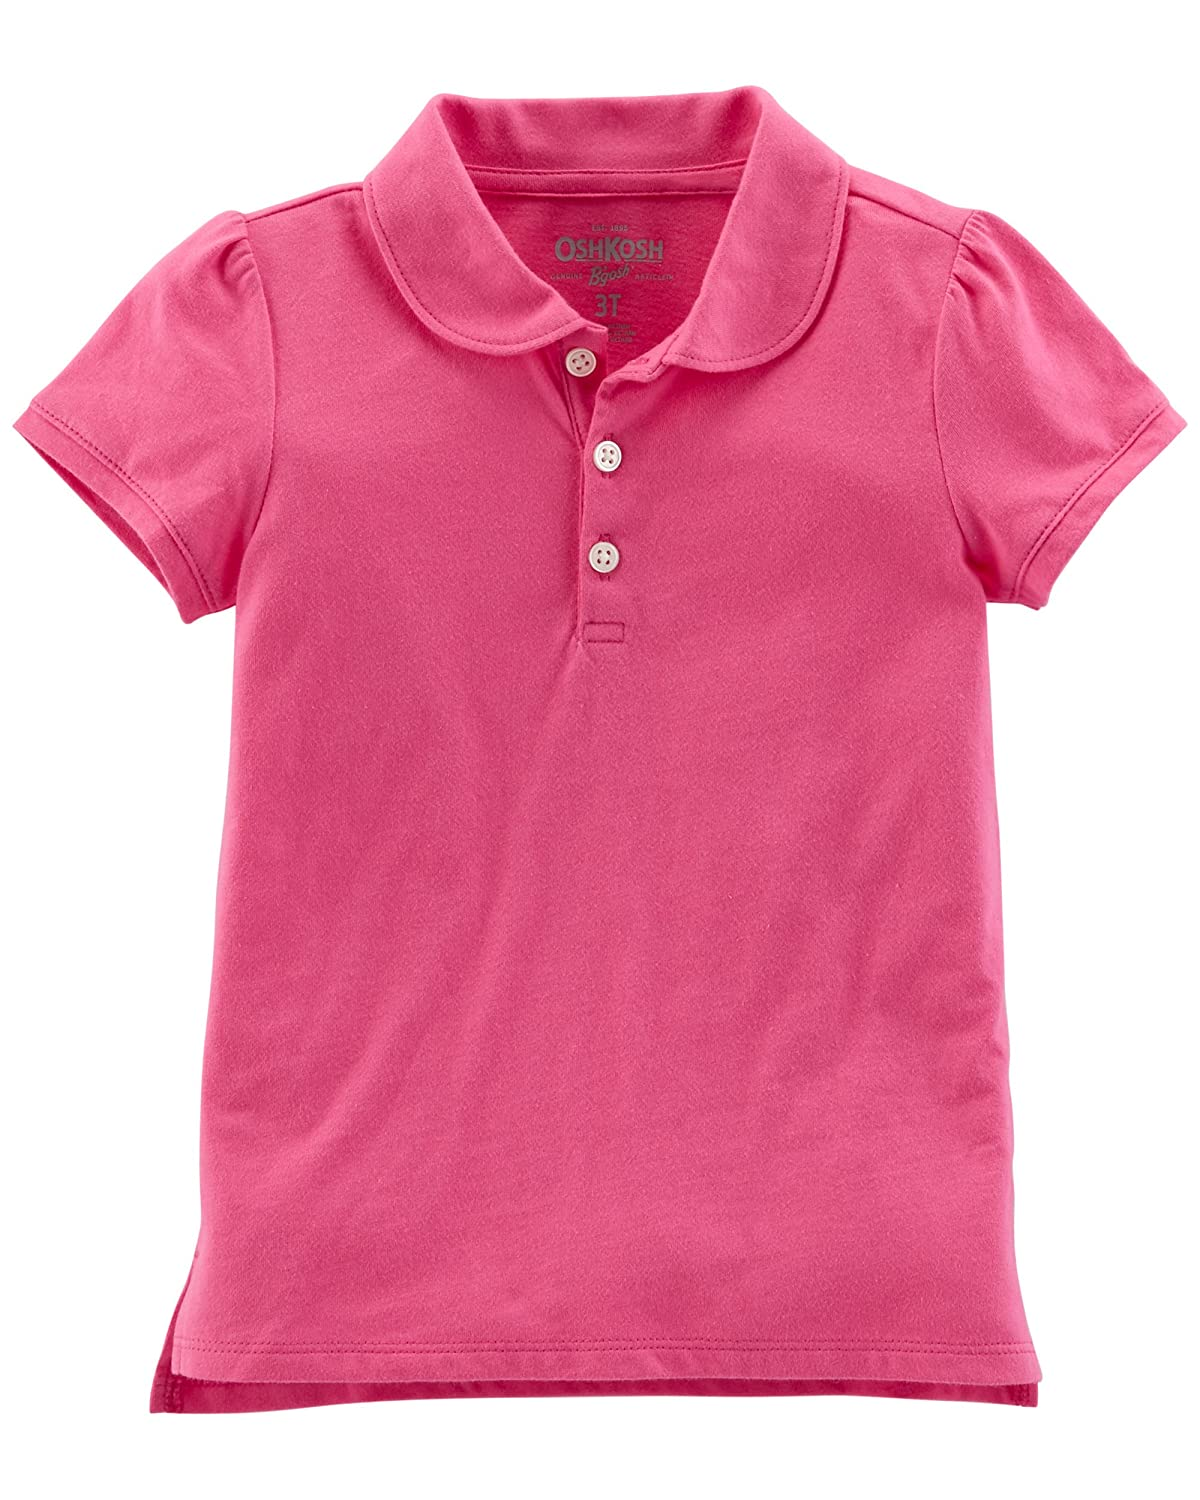 OshKosh B'Gosh Girls' Short Sleeve Uniform Polo Osh Kosh